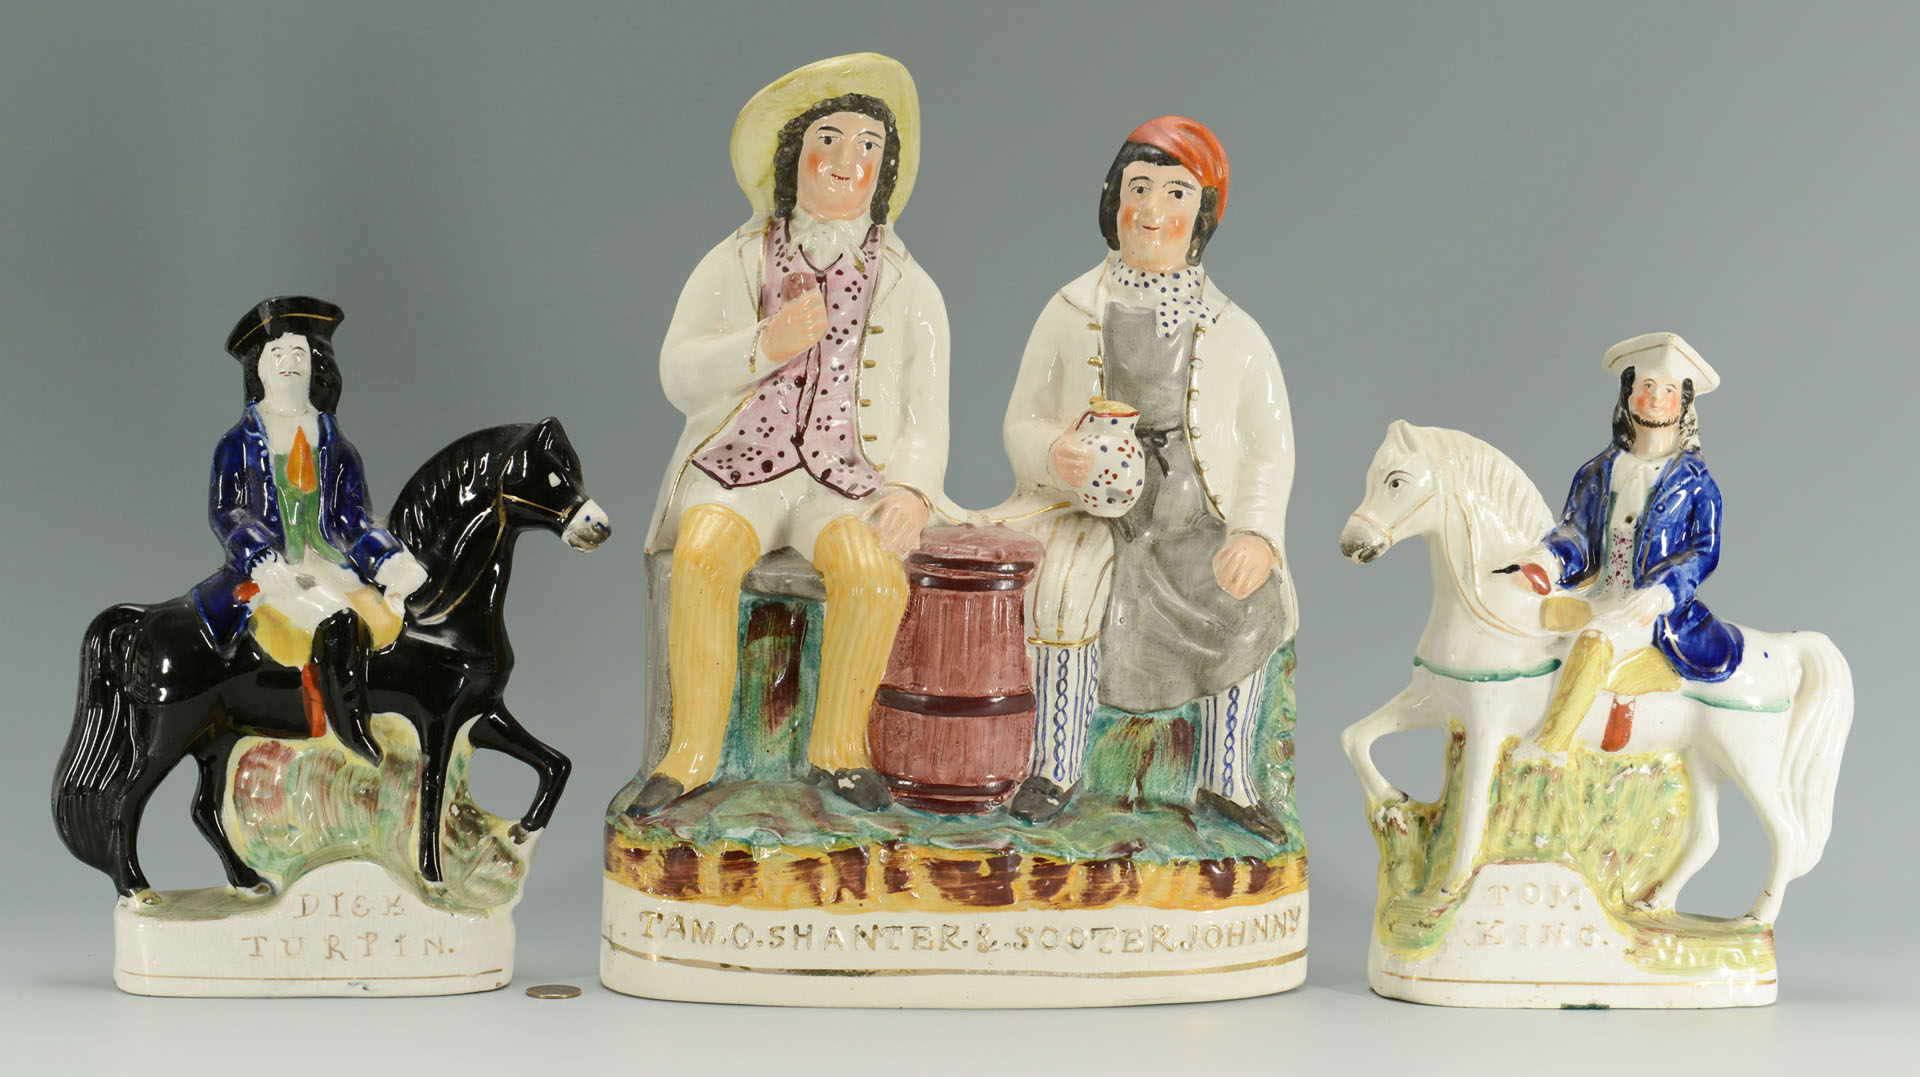 3 Staffordshire figures; Turpin, King, Tam O'Shanter